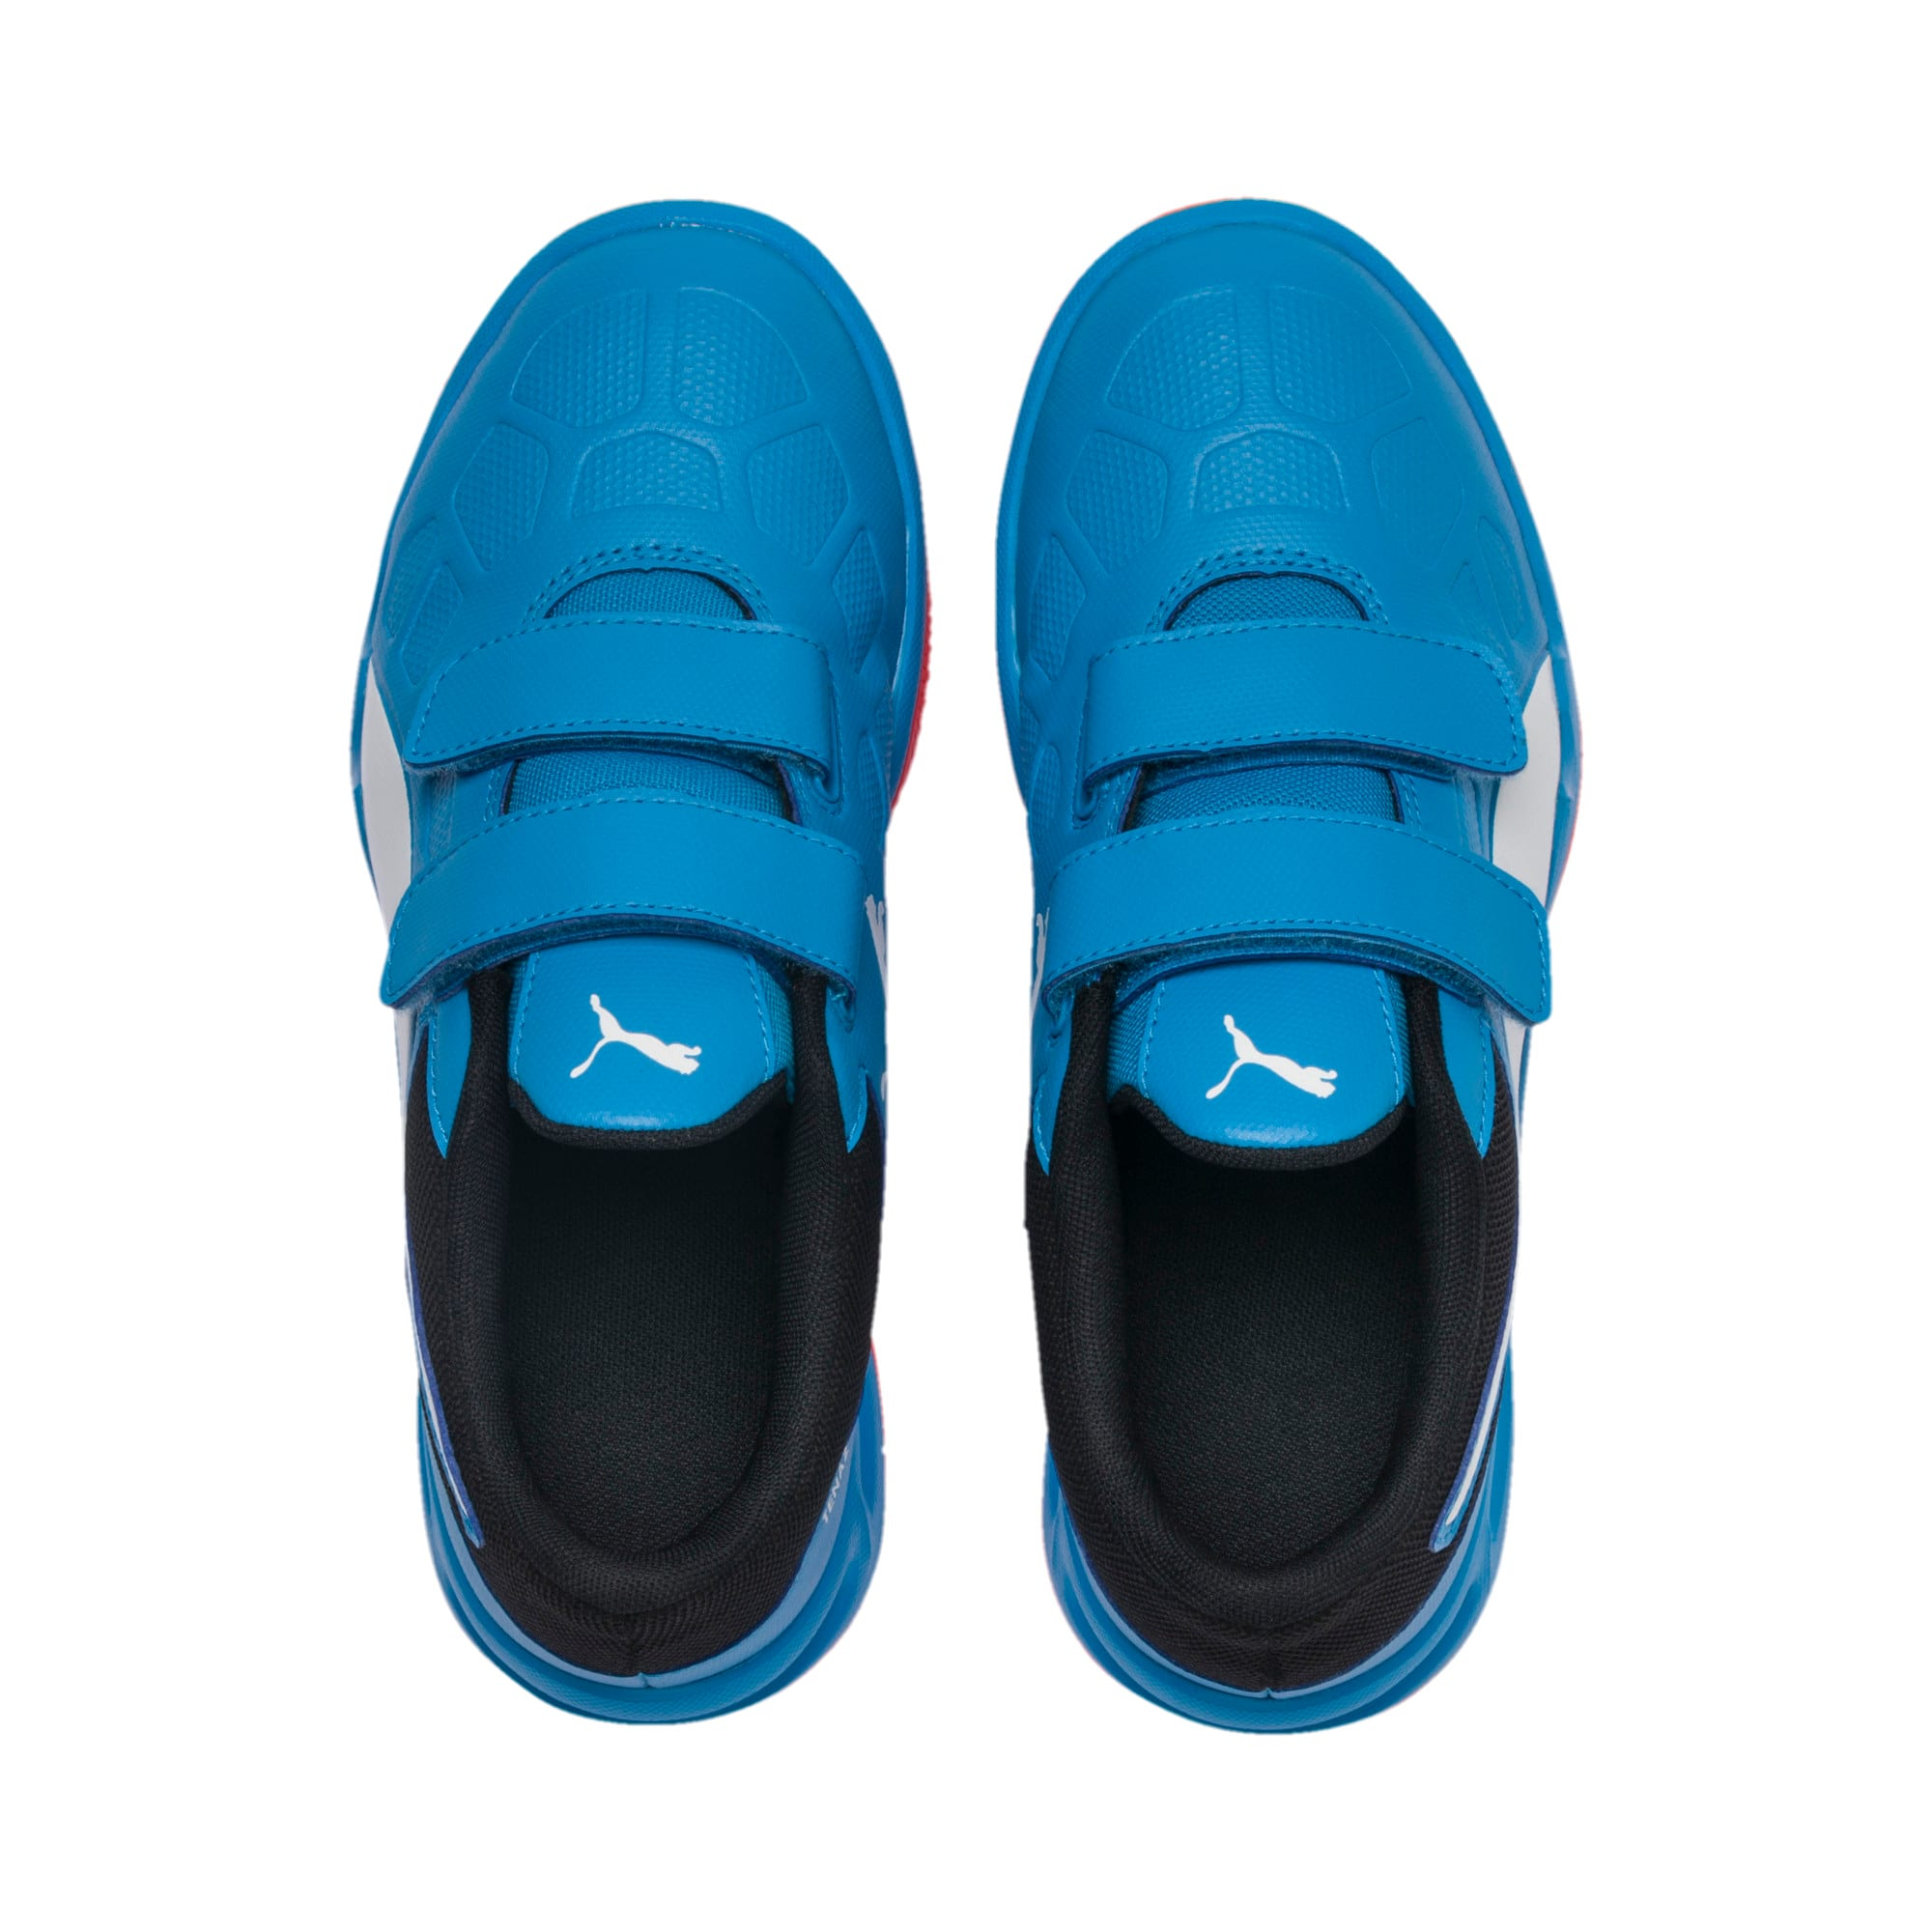 Thumbnail 6 of Tenaz V Youth Trainers, Bleu Azur-White-Black-Red, medium-IND